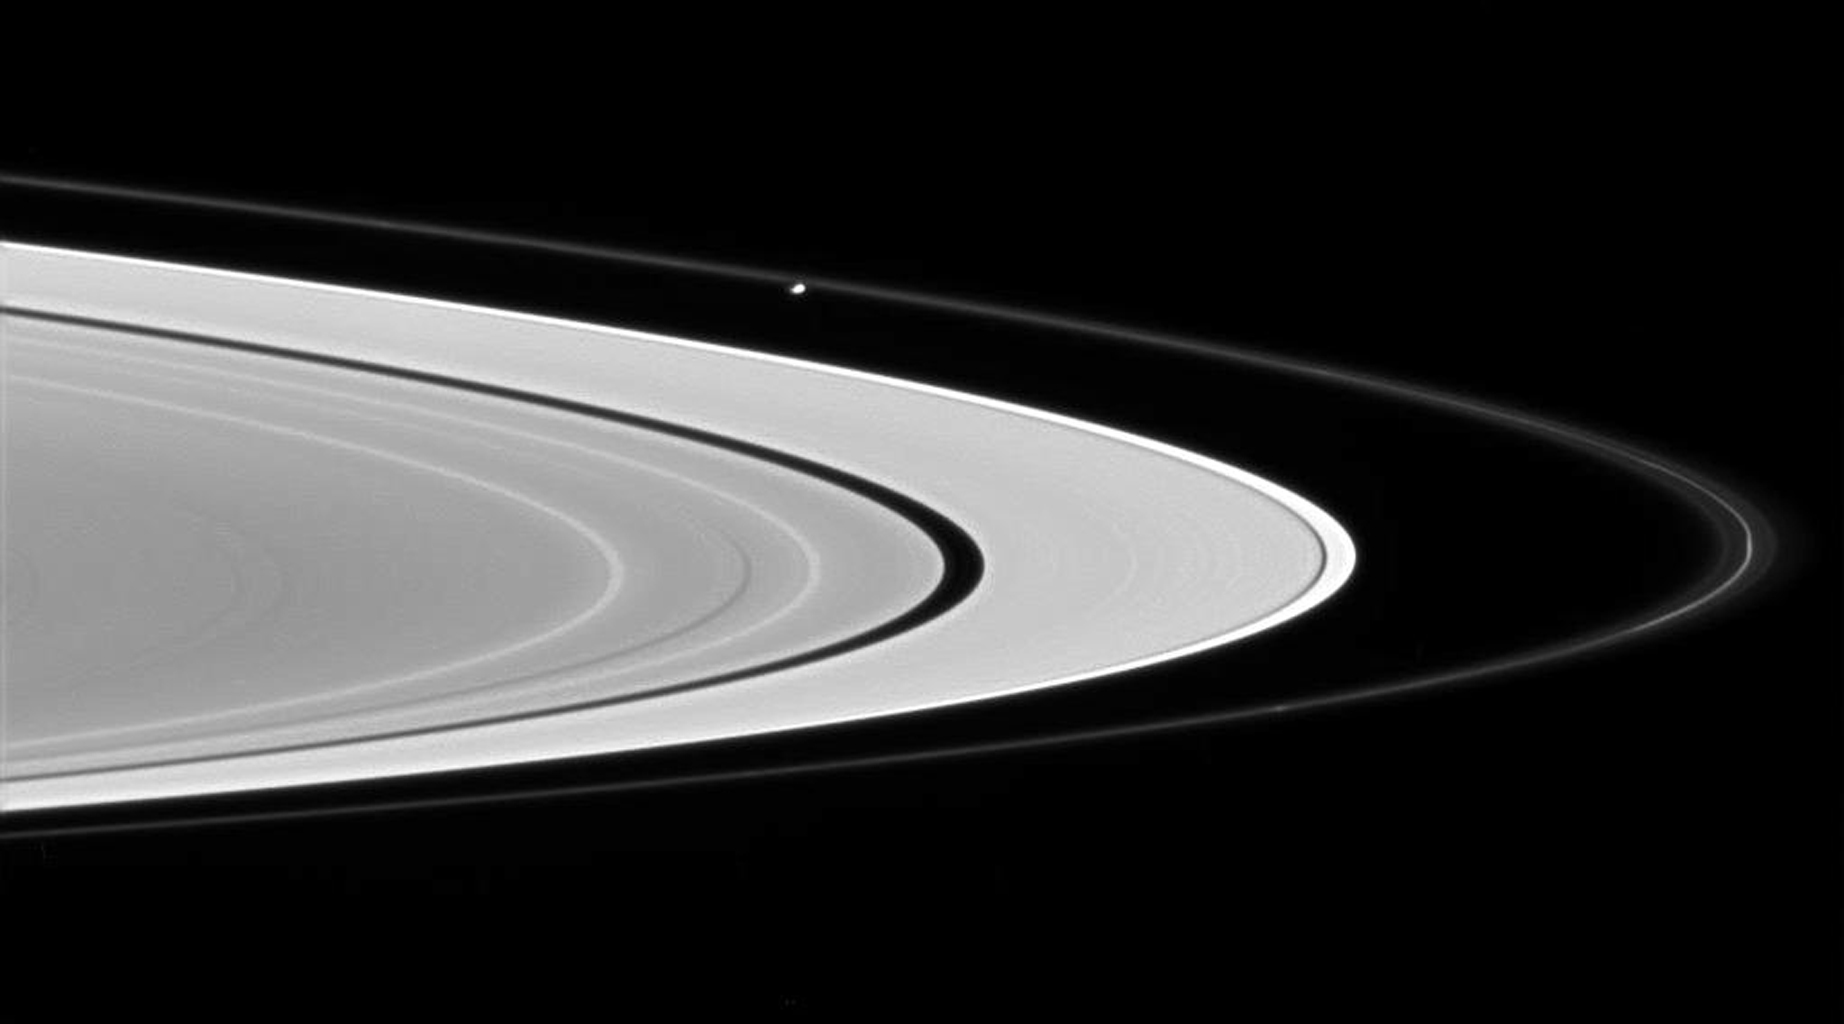 Prometheus glides across the scene from left to right, sculpting and perturbing particles in Saturn's F ring. This image was taken in visible light with NASA's Cassini spacecraft's wide-angle camera on June 28, 2007.